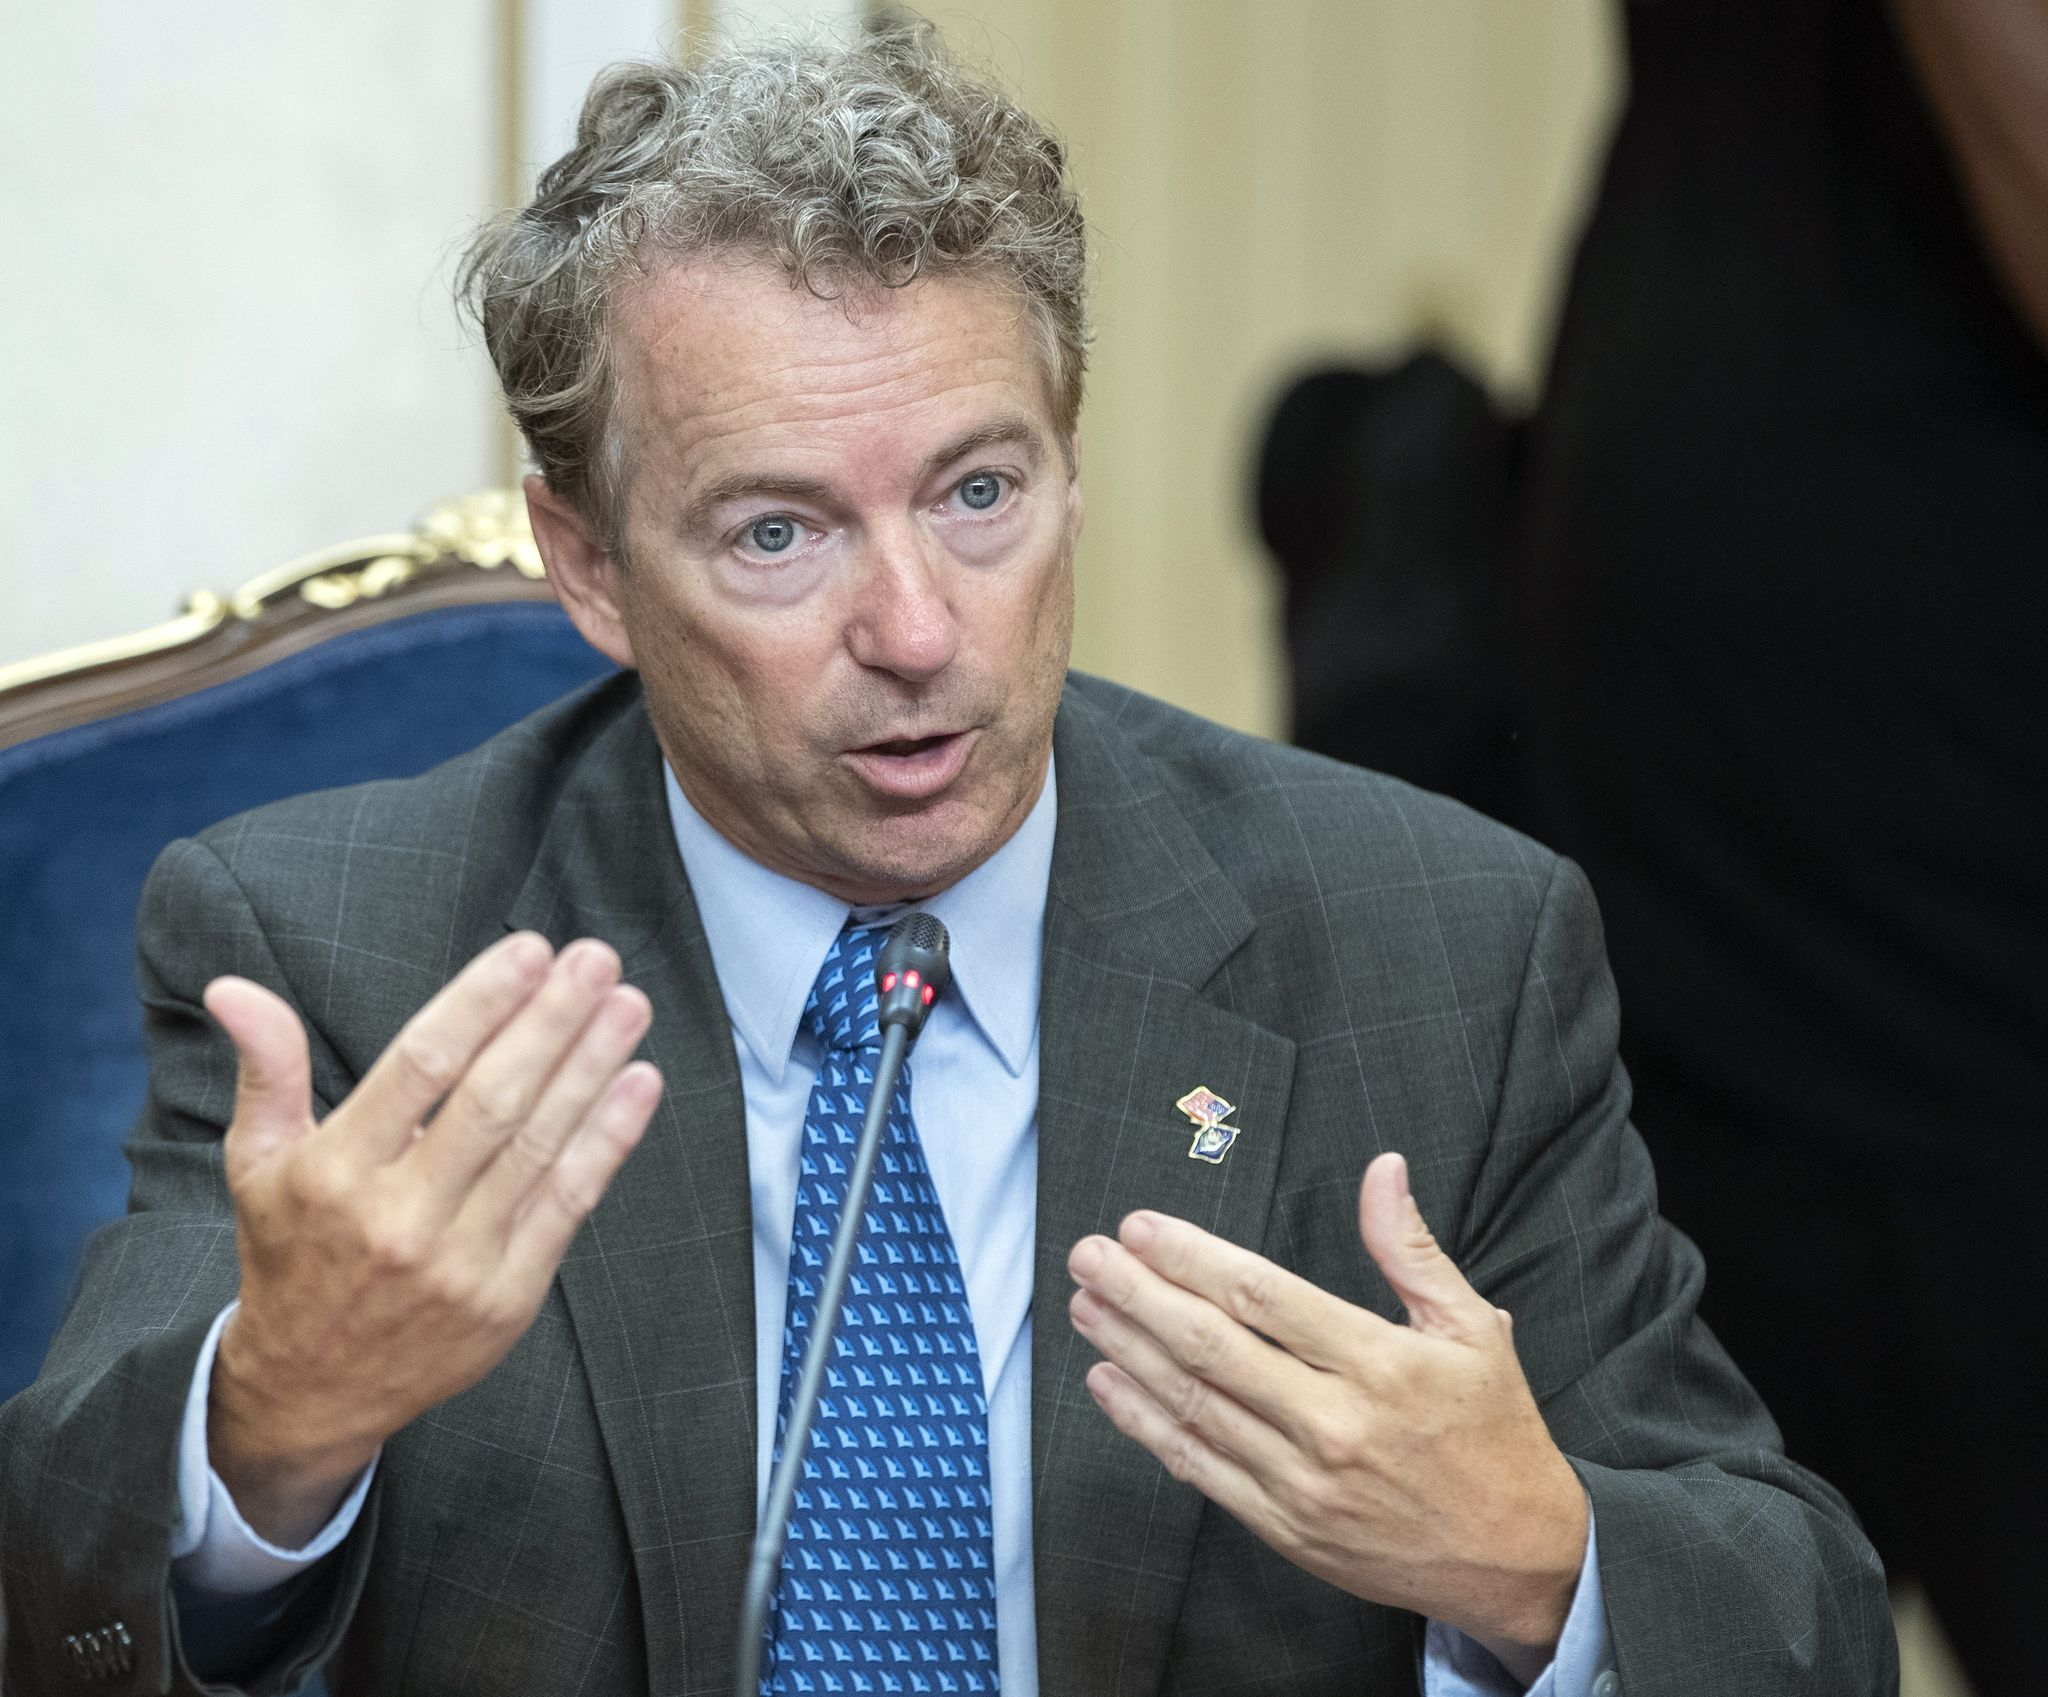 Rand Paul 'disturbed' by William Barr's positions: 'I haven't made a decision yet on him'